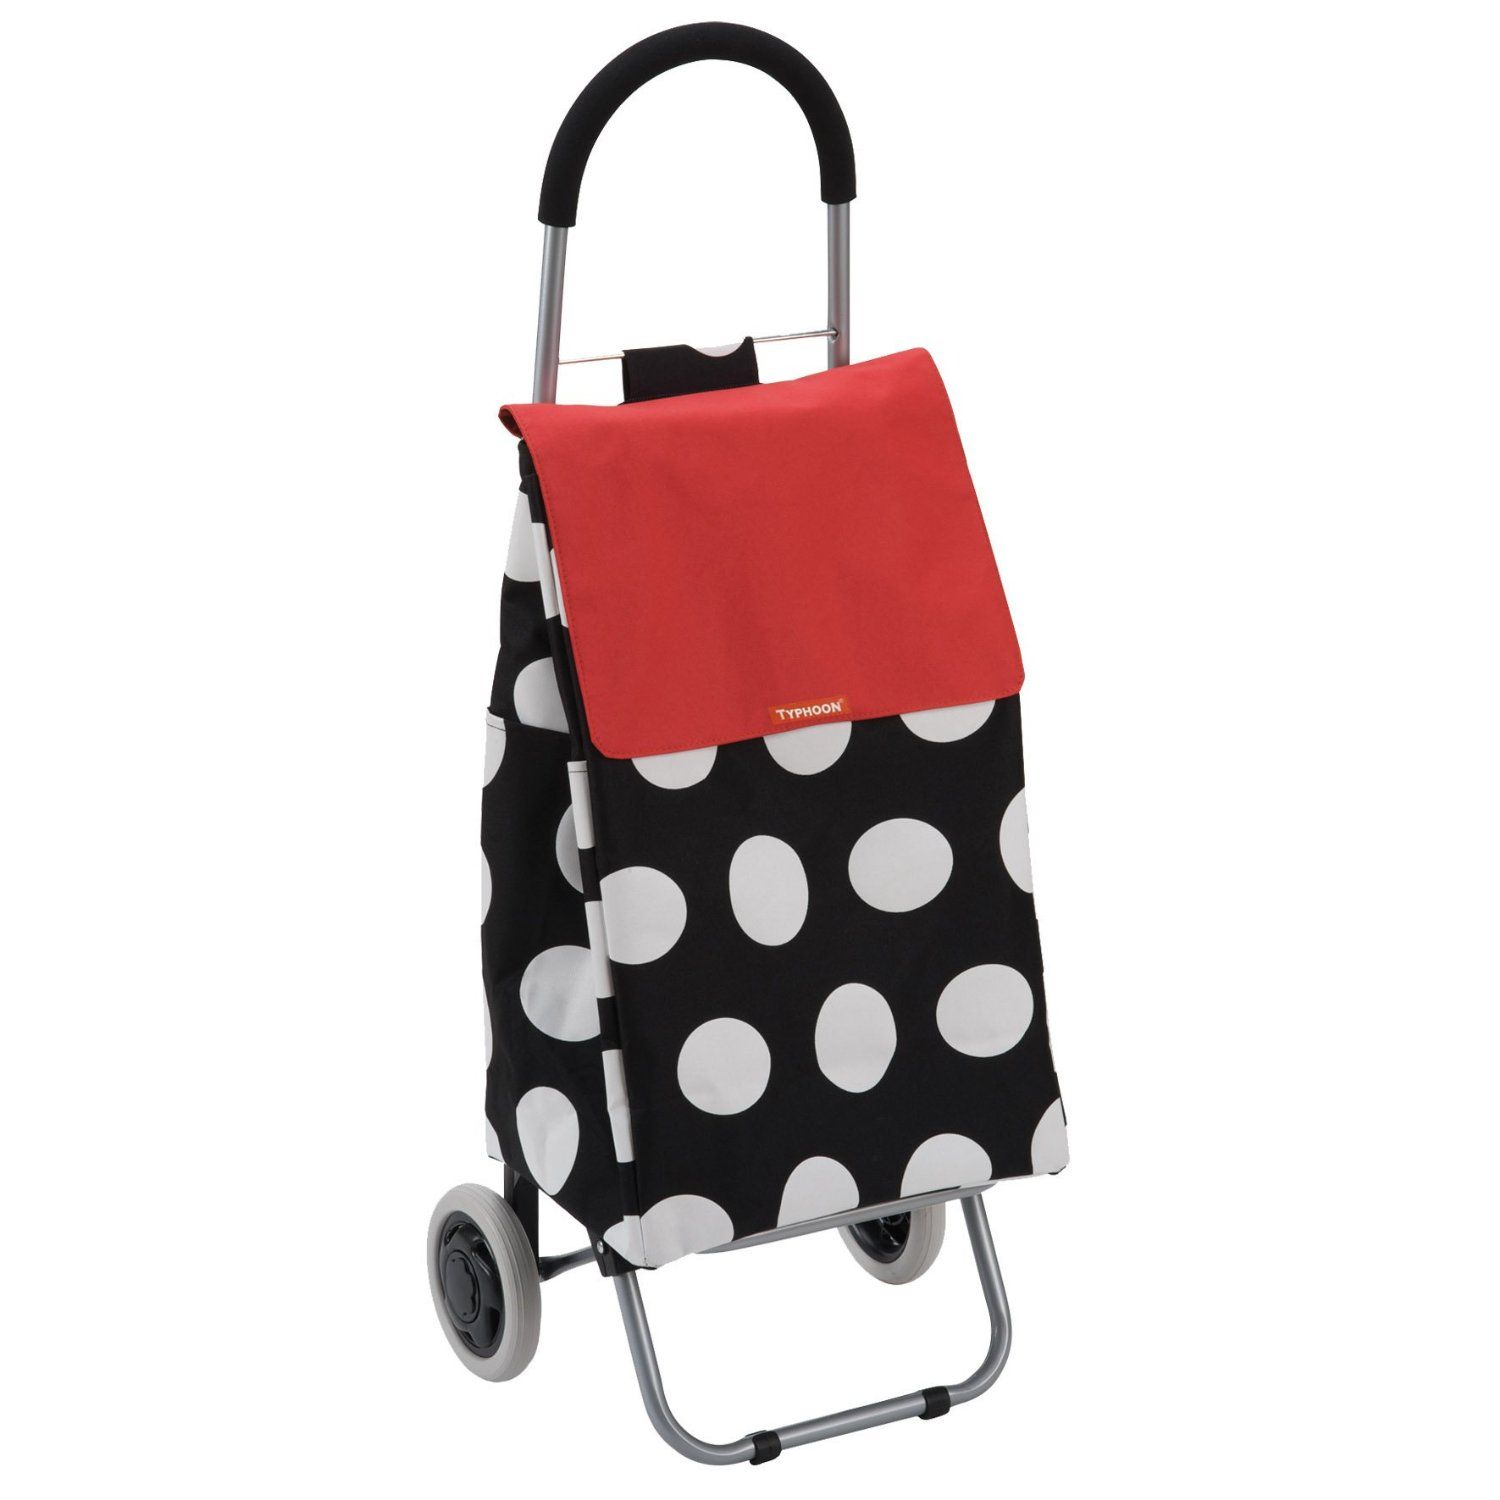 With The Shift Away From The Use Of Plastic Bags This Little Wonder Will Make Shopping A Breeze Whether You Are Making Shopping Trolley Colorful Storage Bags